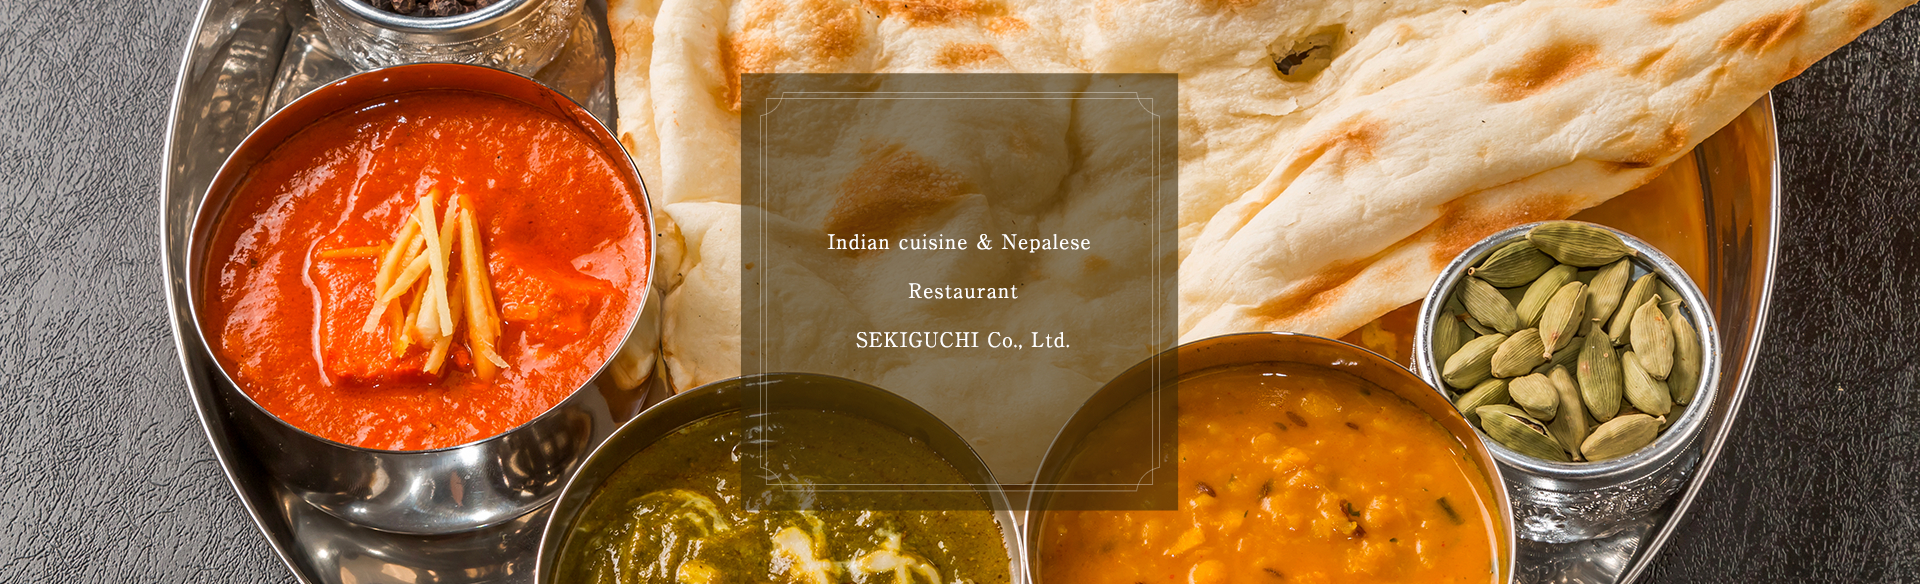 Indian cuisine & Nepalese Restaurant SEKIGUCHI Co., Ltd.